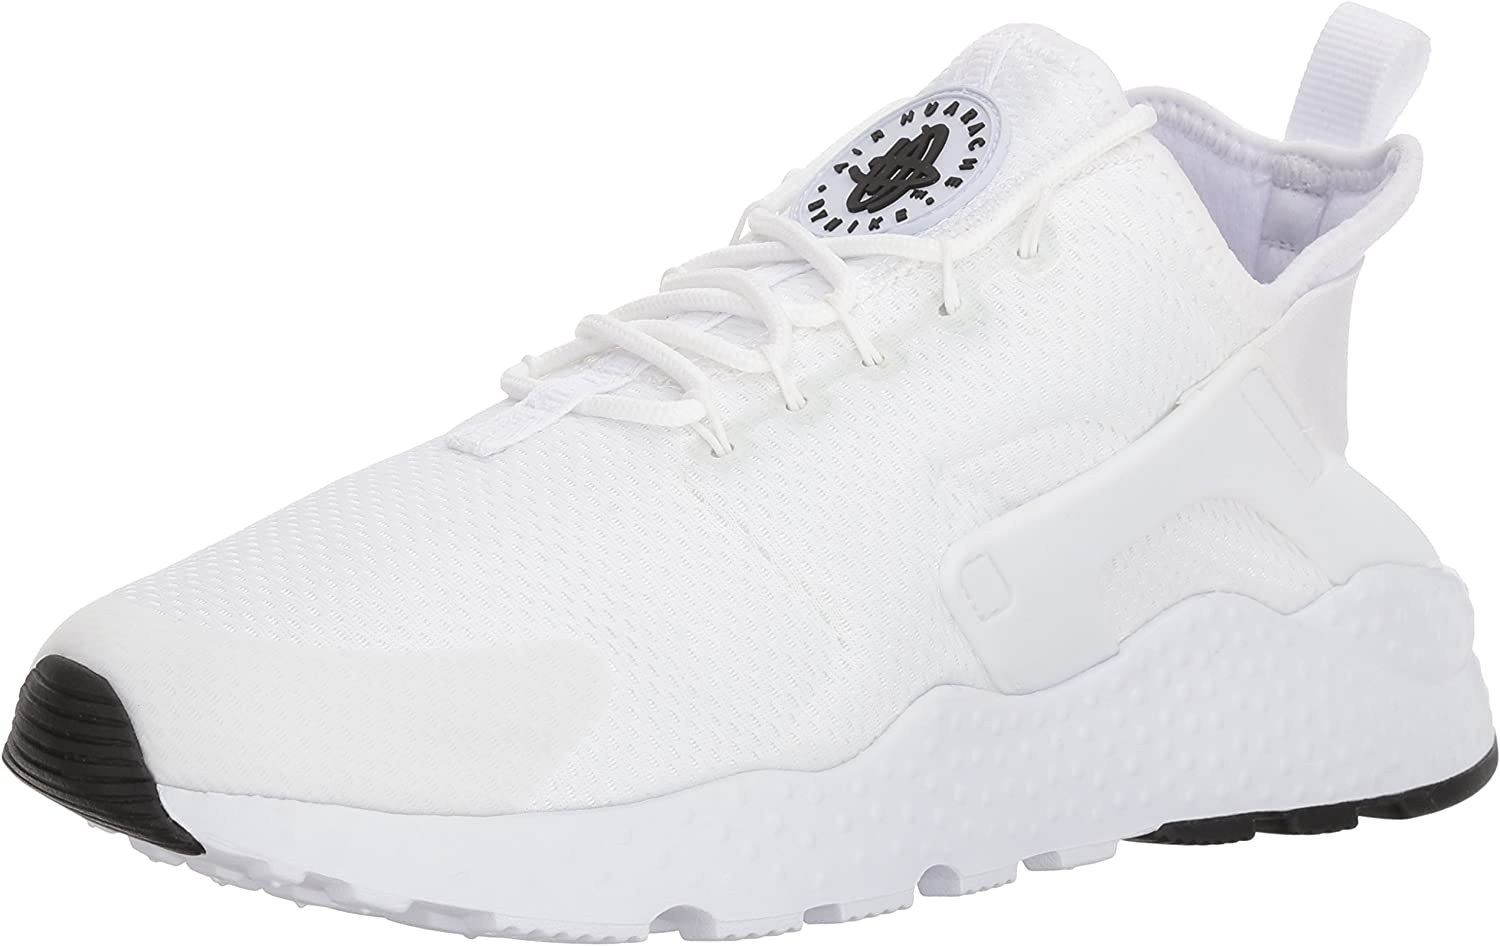 rima Aprobación Labor  Amazon.com | Nike Women's Low-Top Trainers, White/White-Black, 37.5 | Road  Running